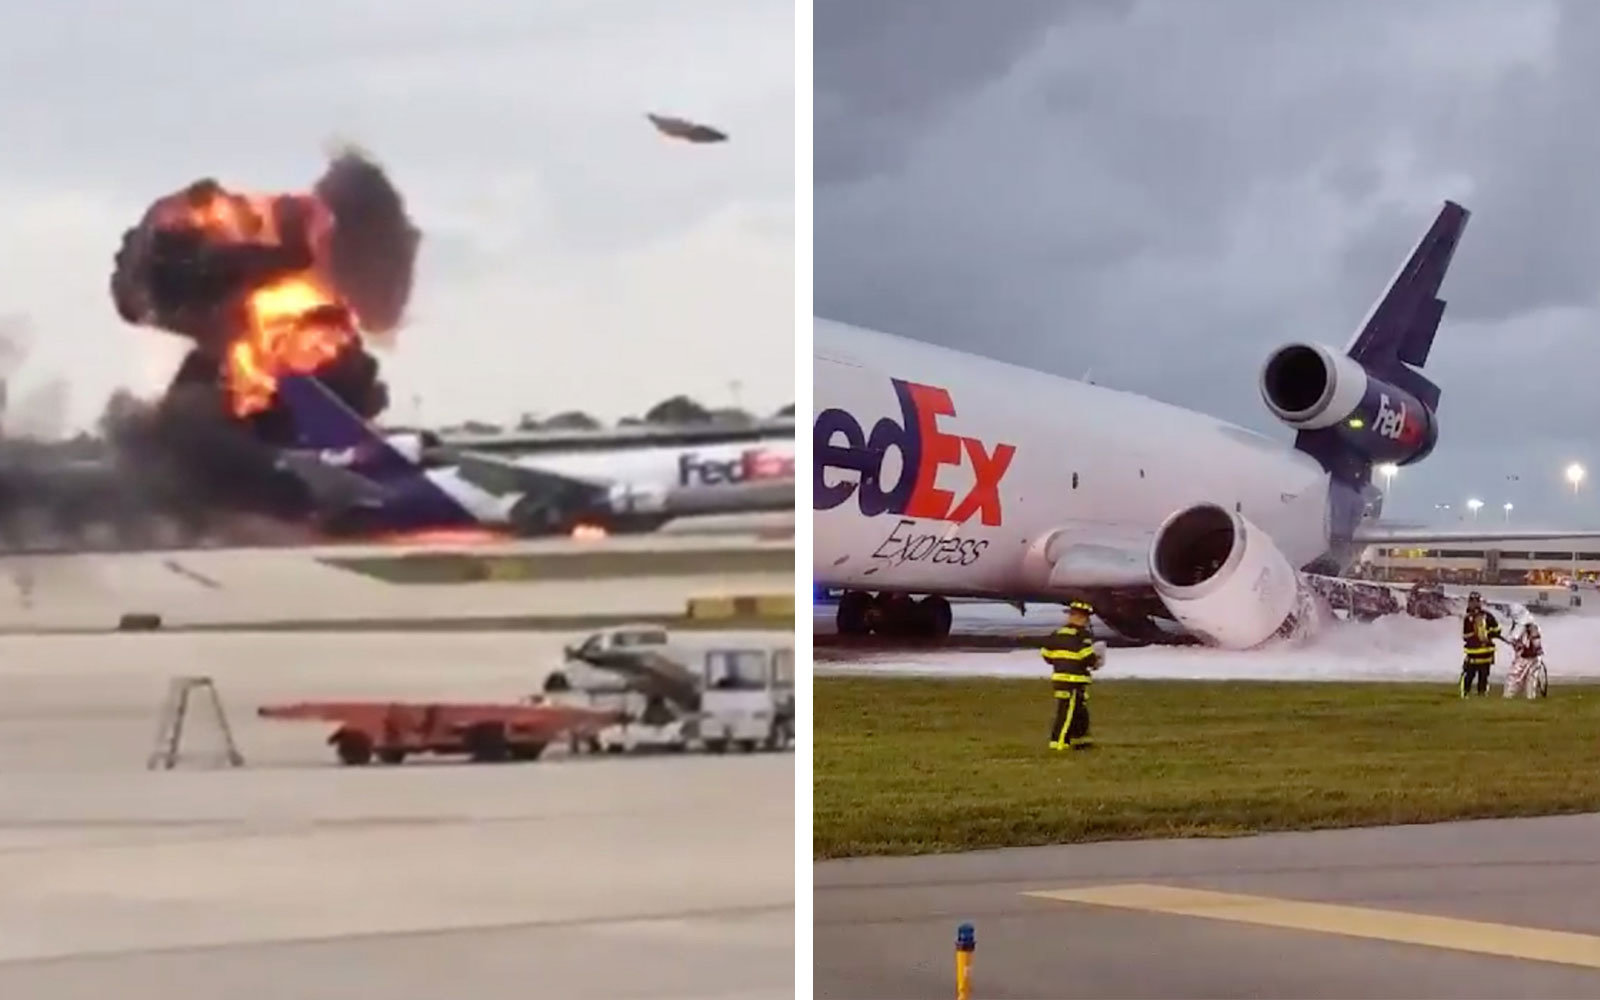 FedEx plane explodes at Ft. Lauderdale Airport